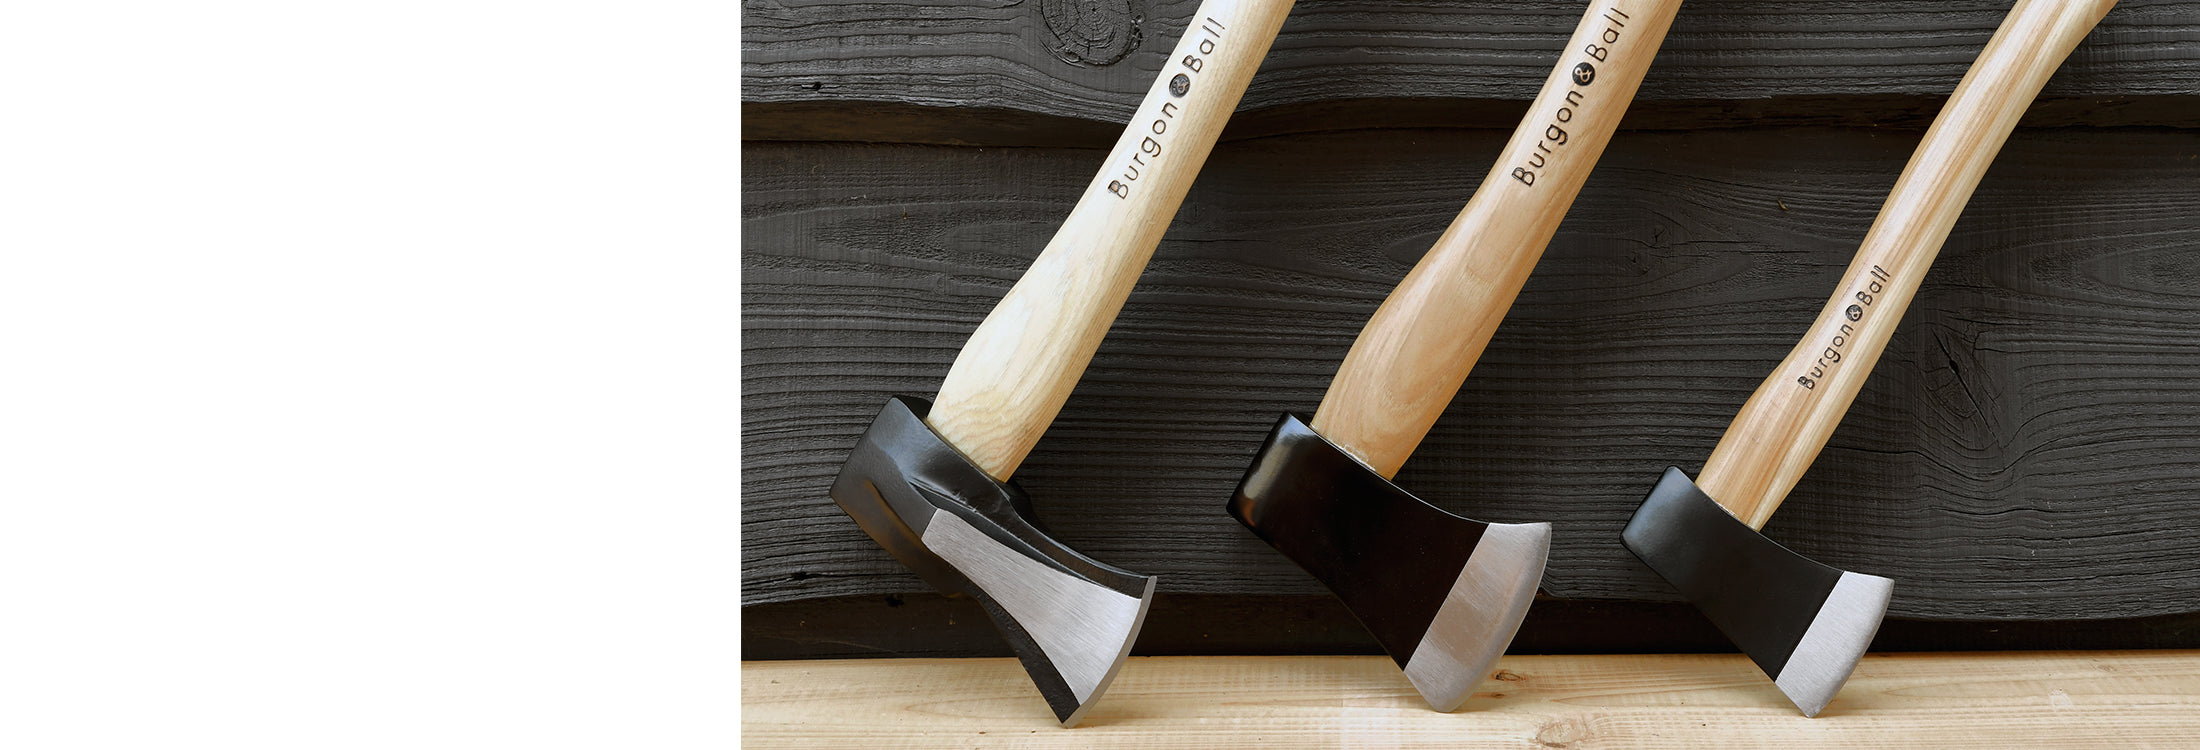 Trade Axes and Wood Cutting Tools